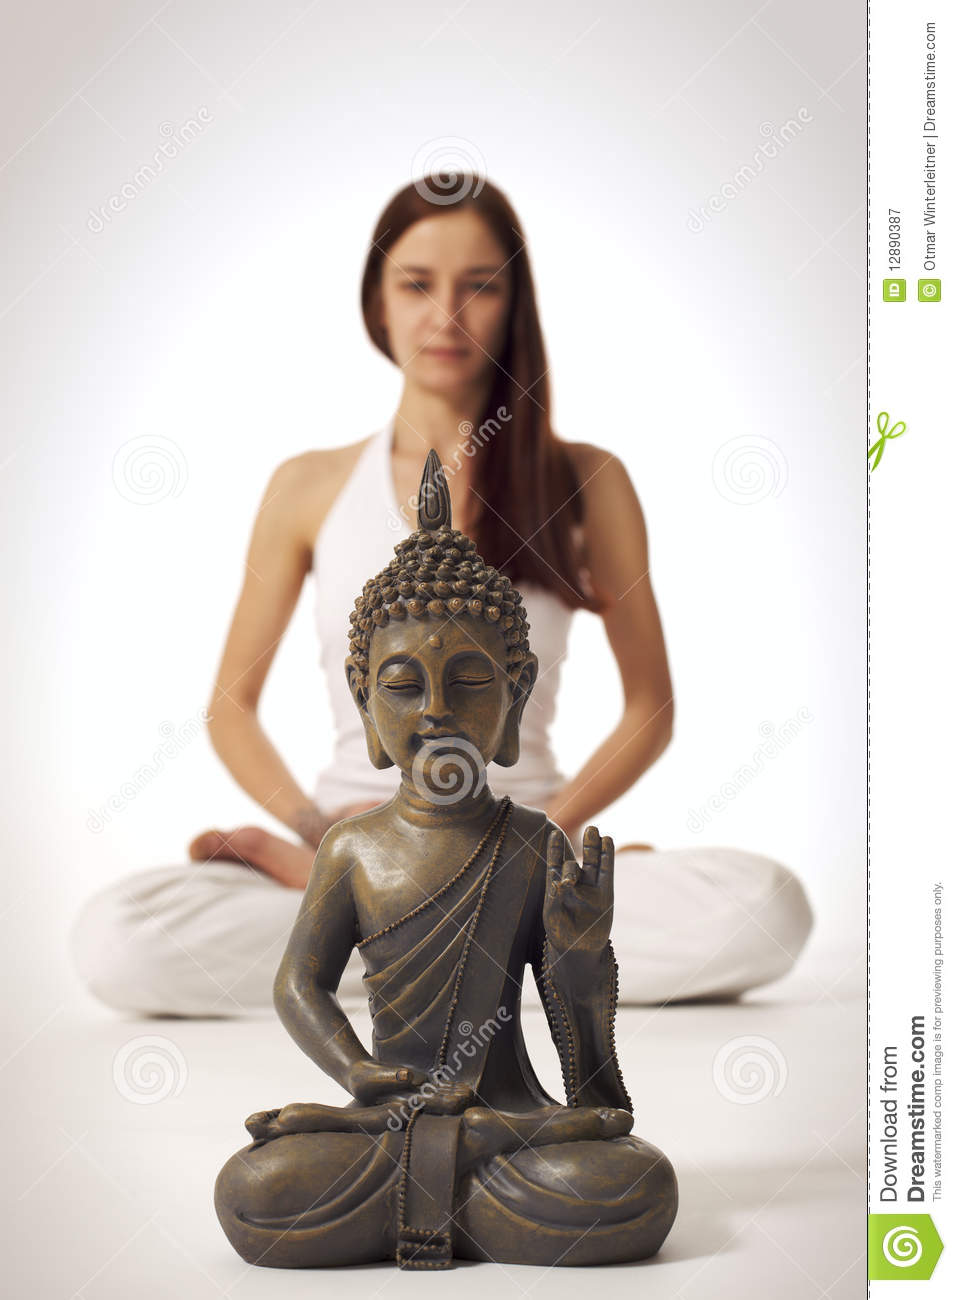 bayfield buddhist single women Our compatibility matching system narrows the field from thousands of buddhist singles to match you with a select group of compatible buddhist men or women with whom you can build lasting.